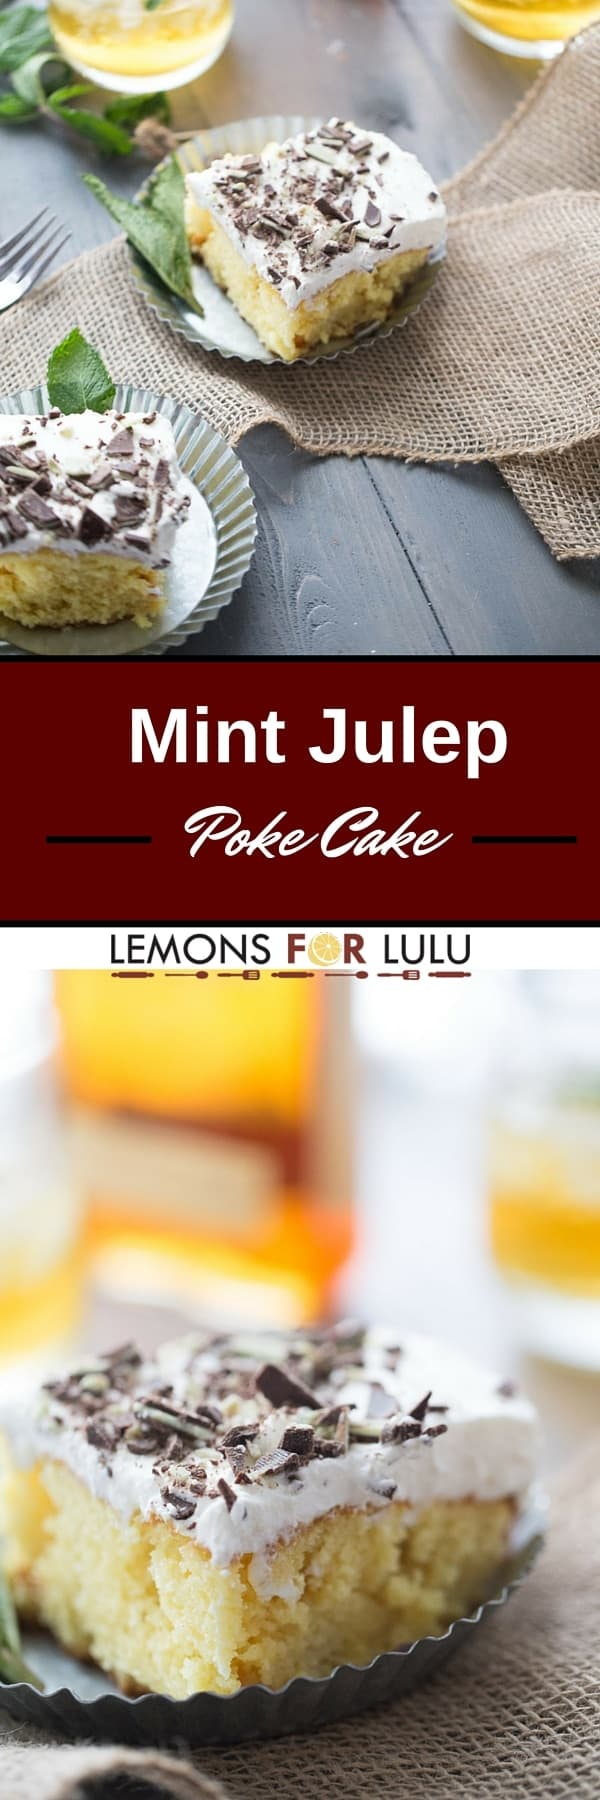 Poke are so simple and come in an endless variety of flavors; this mint julep poke cake recipe takes the classic cocktail and turns it into one memorable dessert!